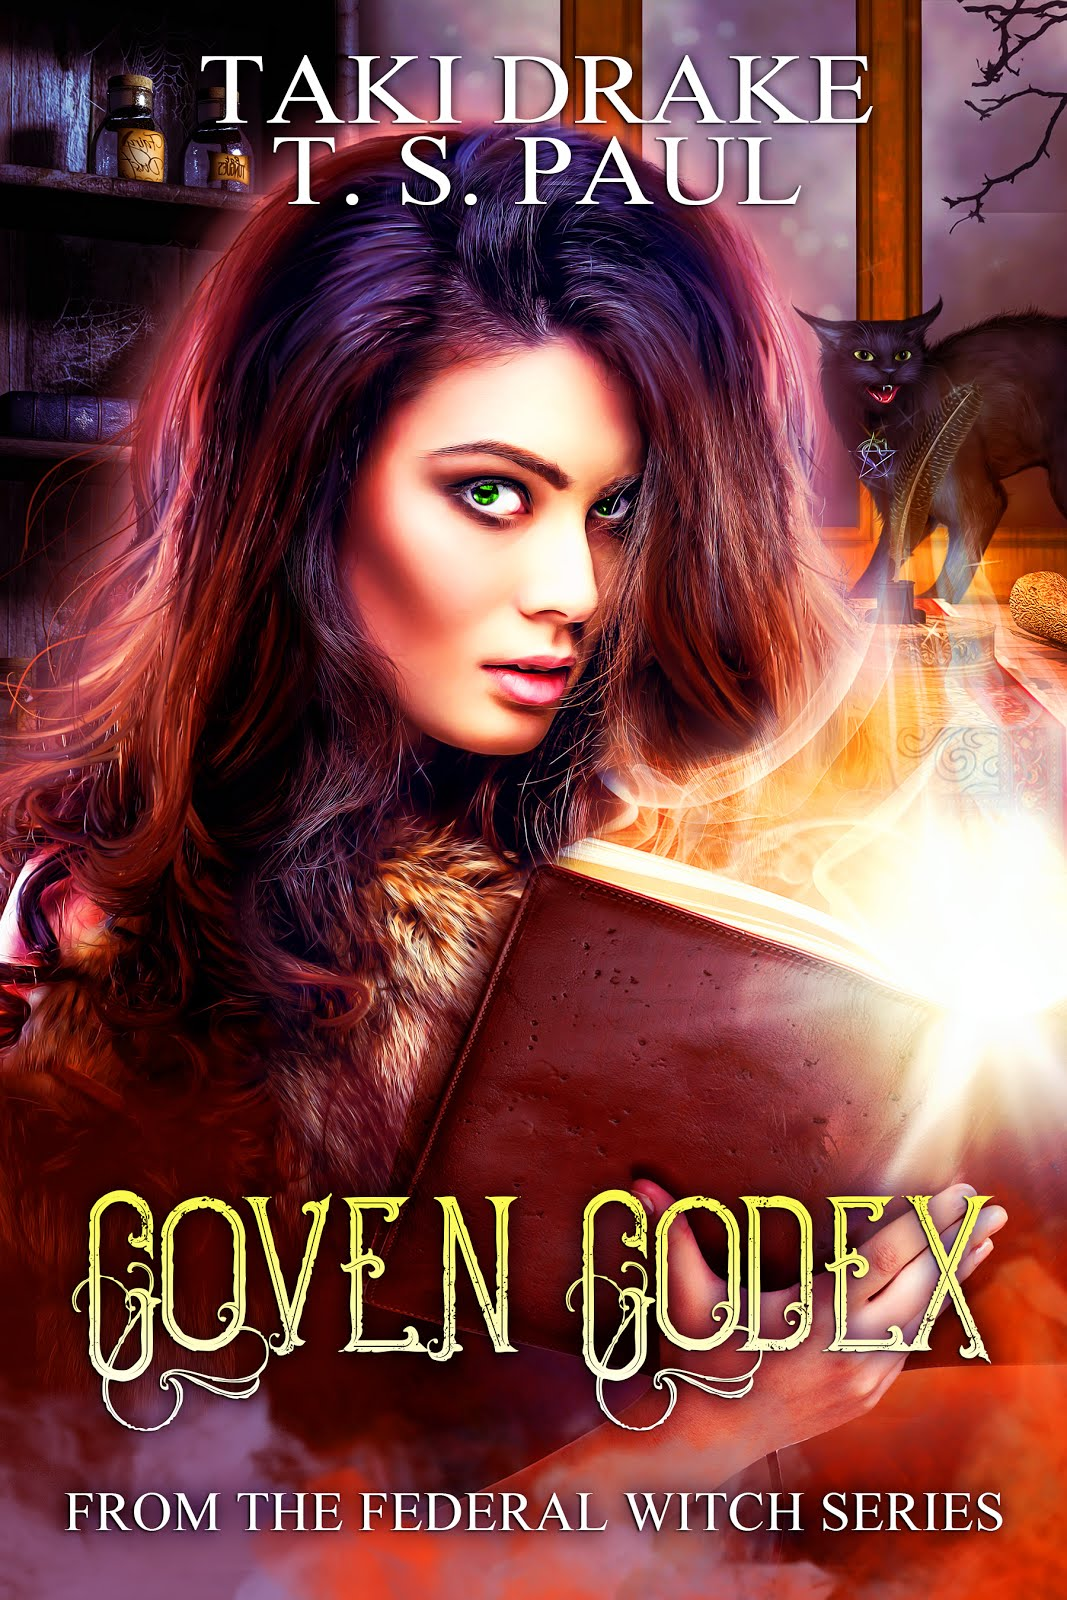 Coven Codex - Book 2 in Standard of Honor